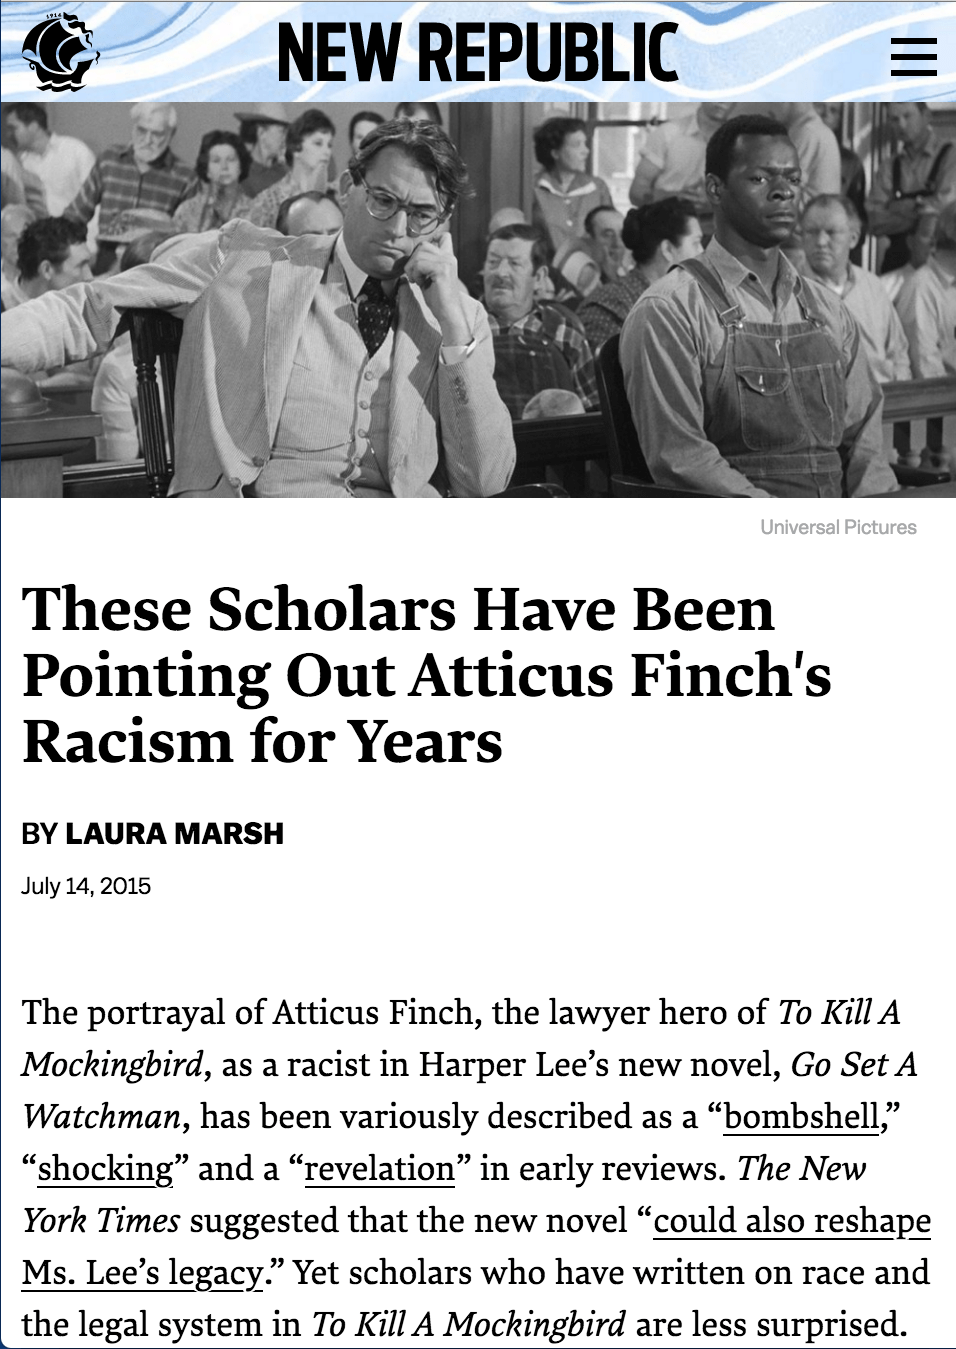 New Republic: These Scholars Have Been Pointing Out Atticus Finch's Racism for Years